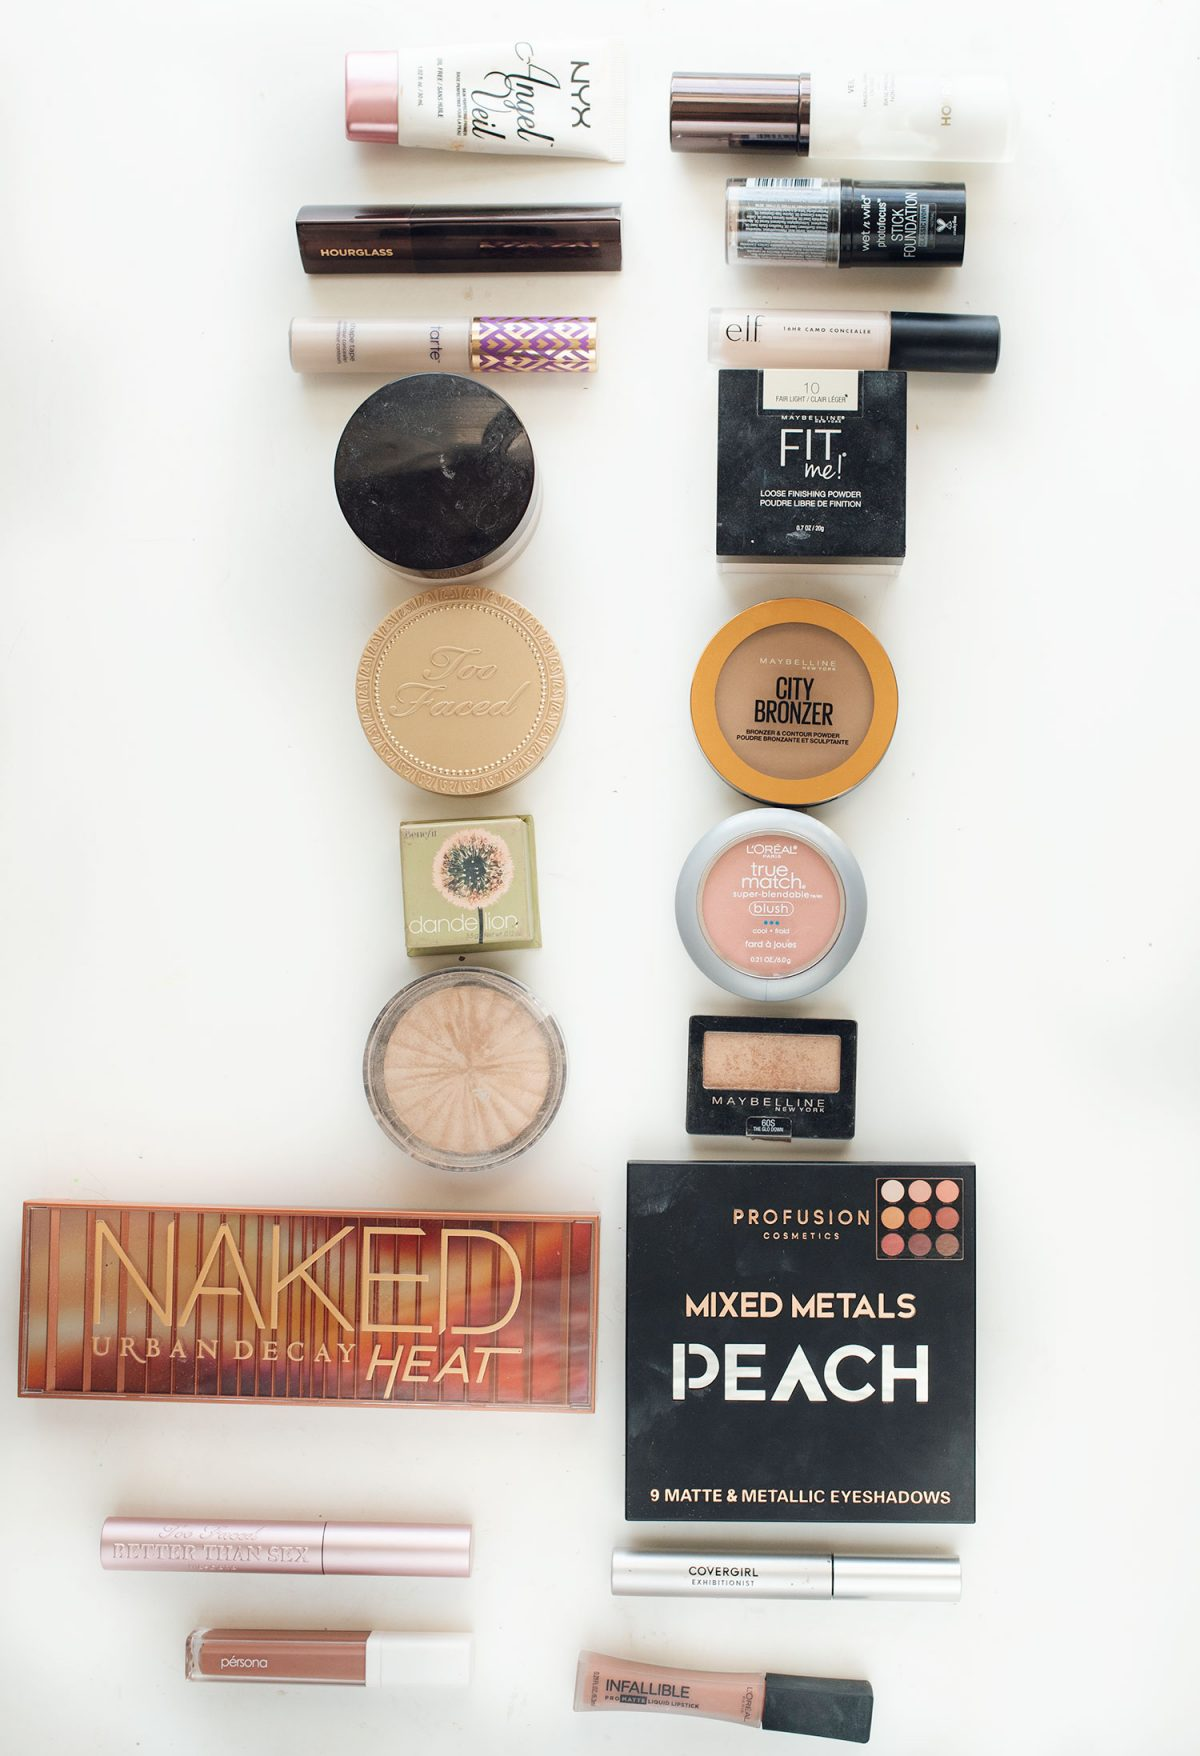 Houston beauty blogger Meg O. shares a full face of drugstore makeup dupes